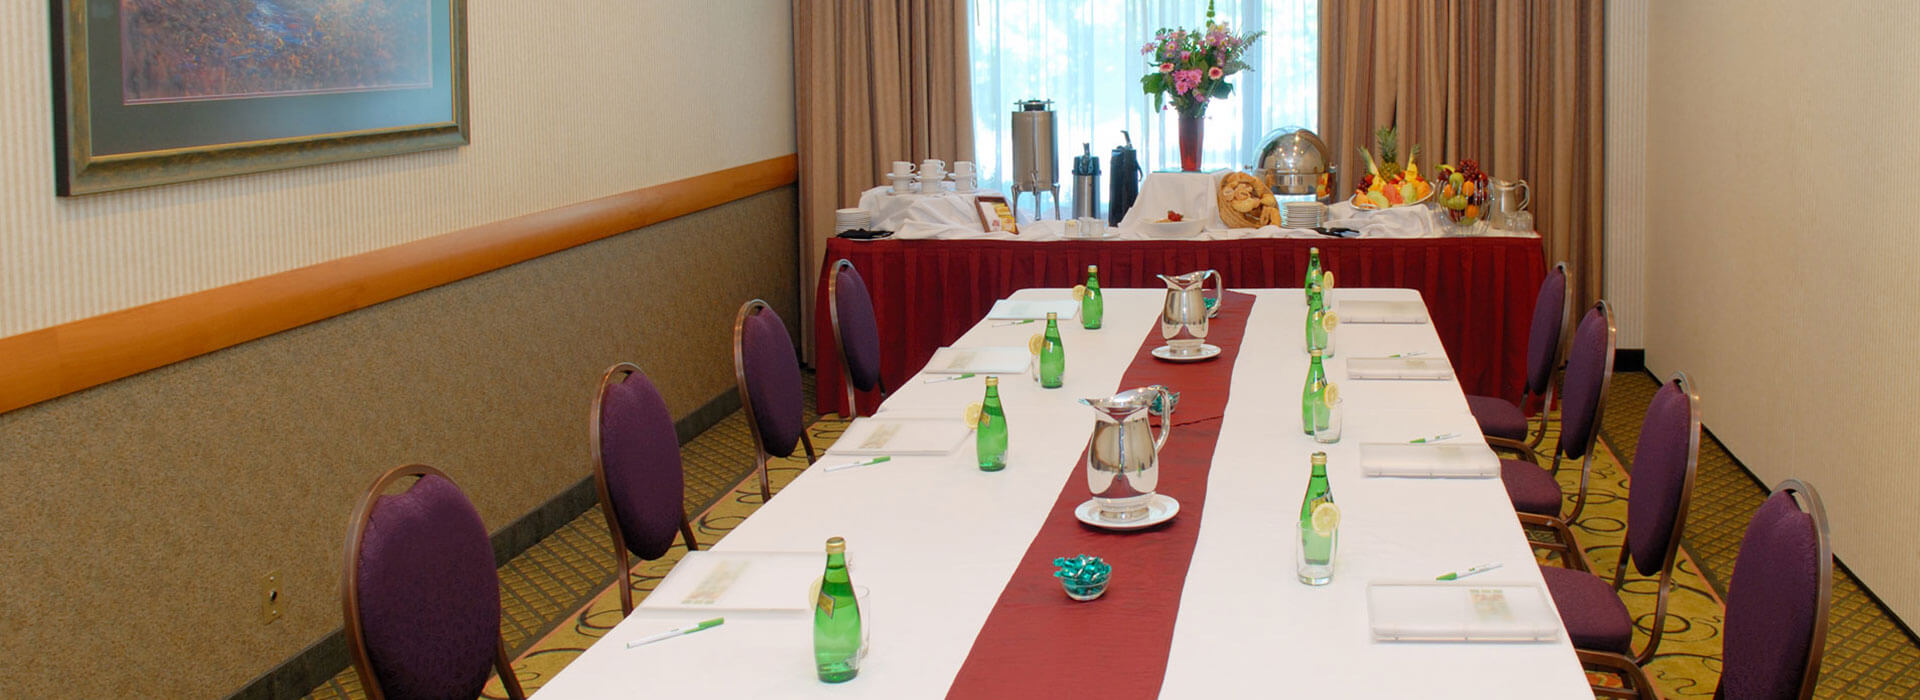 Meeting and conference room - Lillooet Room at Holiday Inn North Vancouver